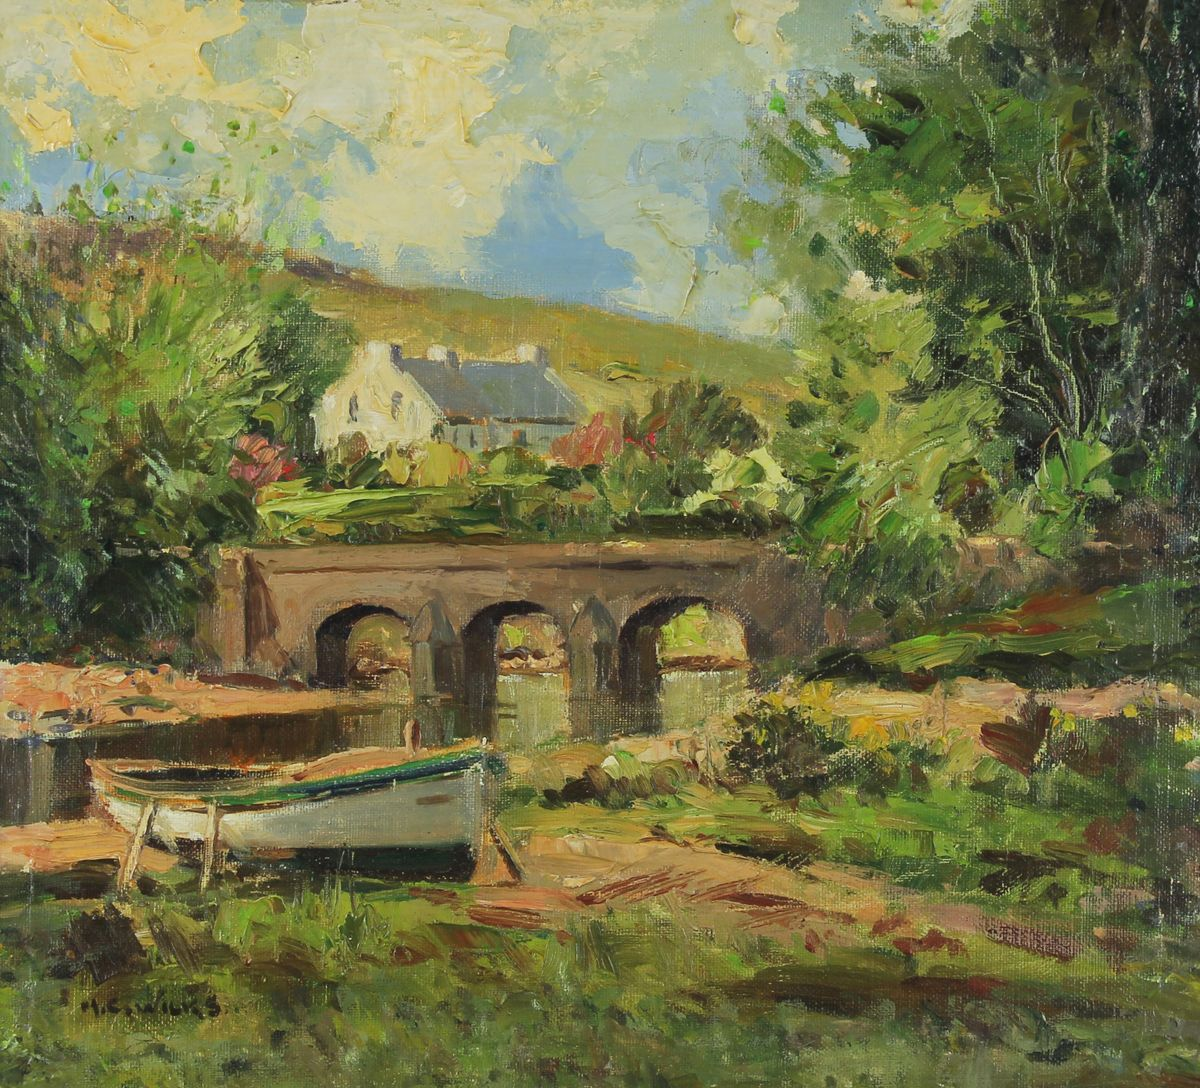 The Bridge, Cushendun by Maurice C Wilks